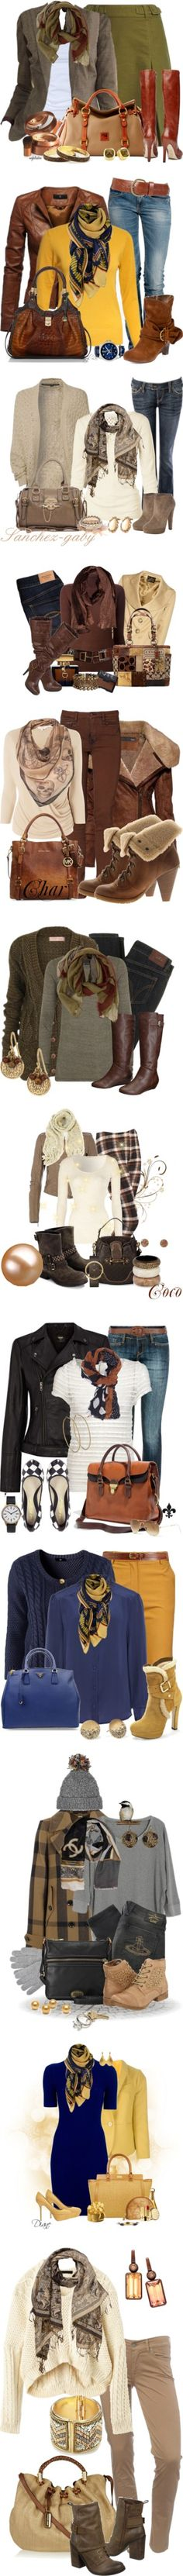 Fall outfits combinations